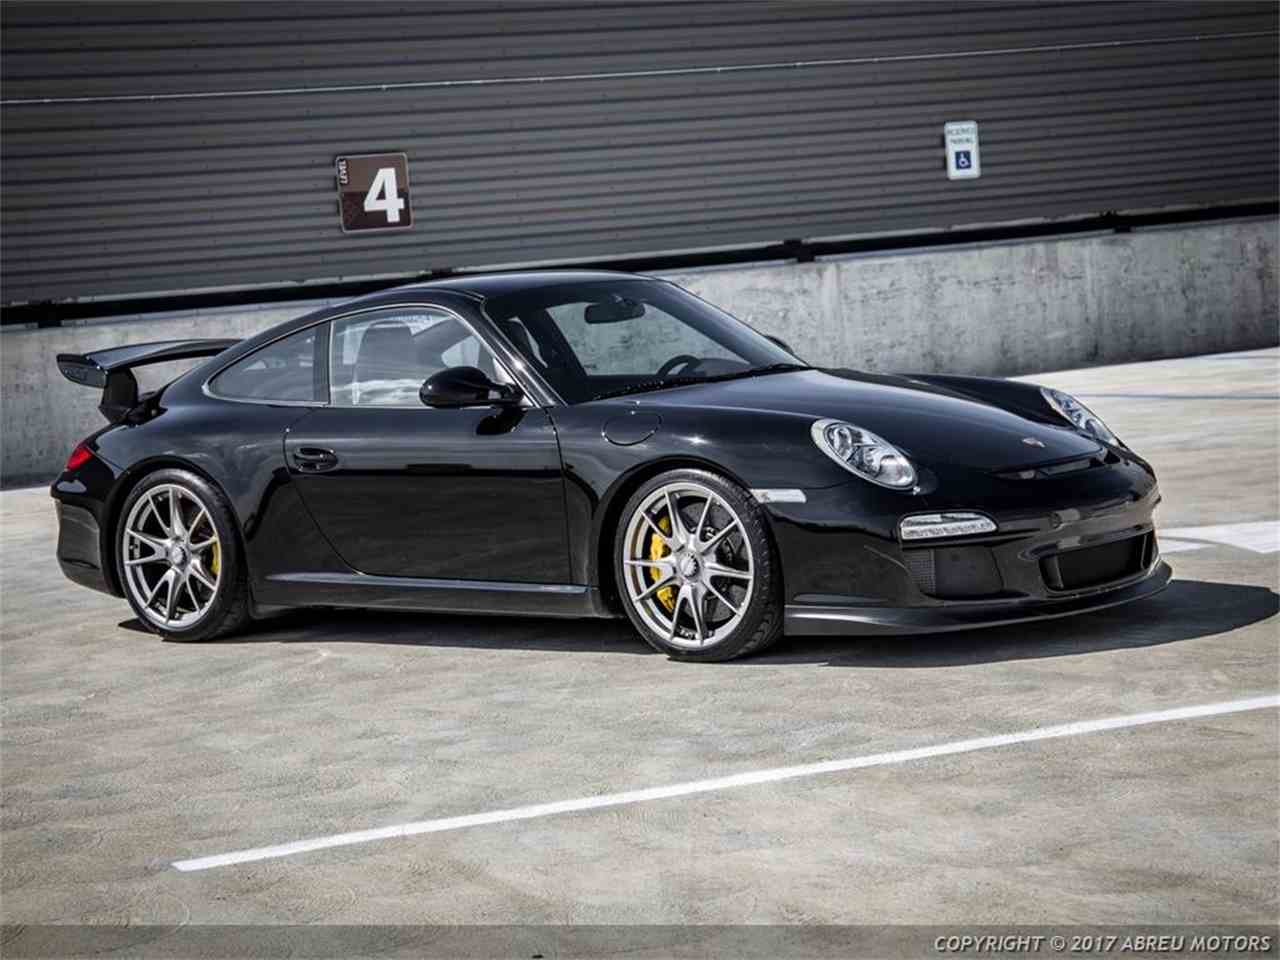 Large Picture of 2011 911 GT3 located in Carmel Indiana Auction Vehicle Offered by Abreu Motors - L3QR